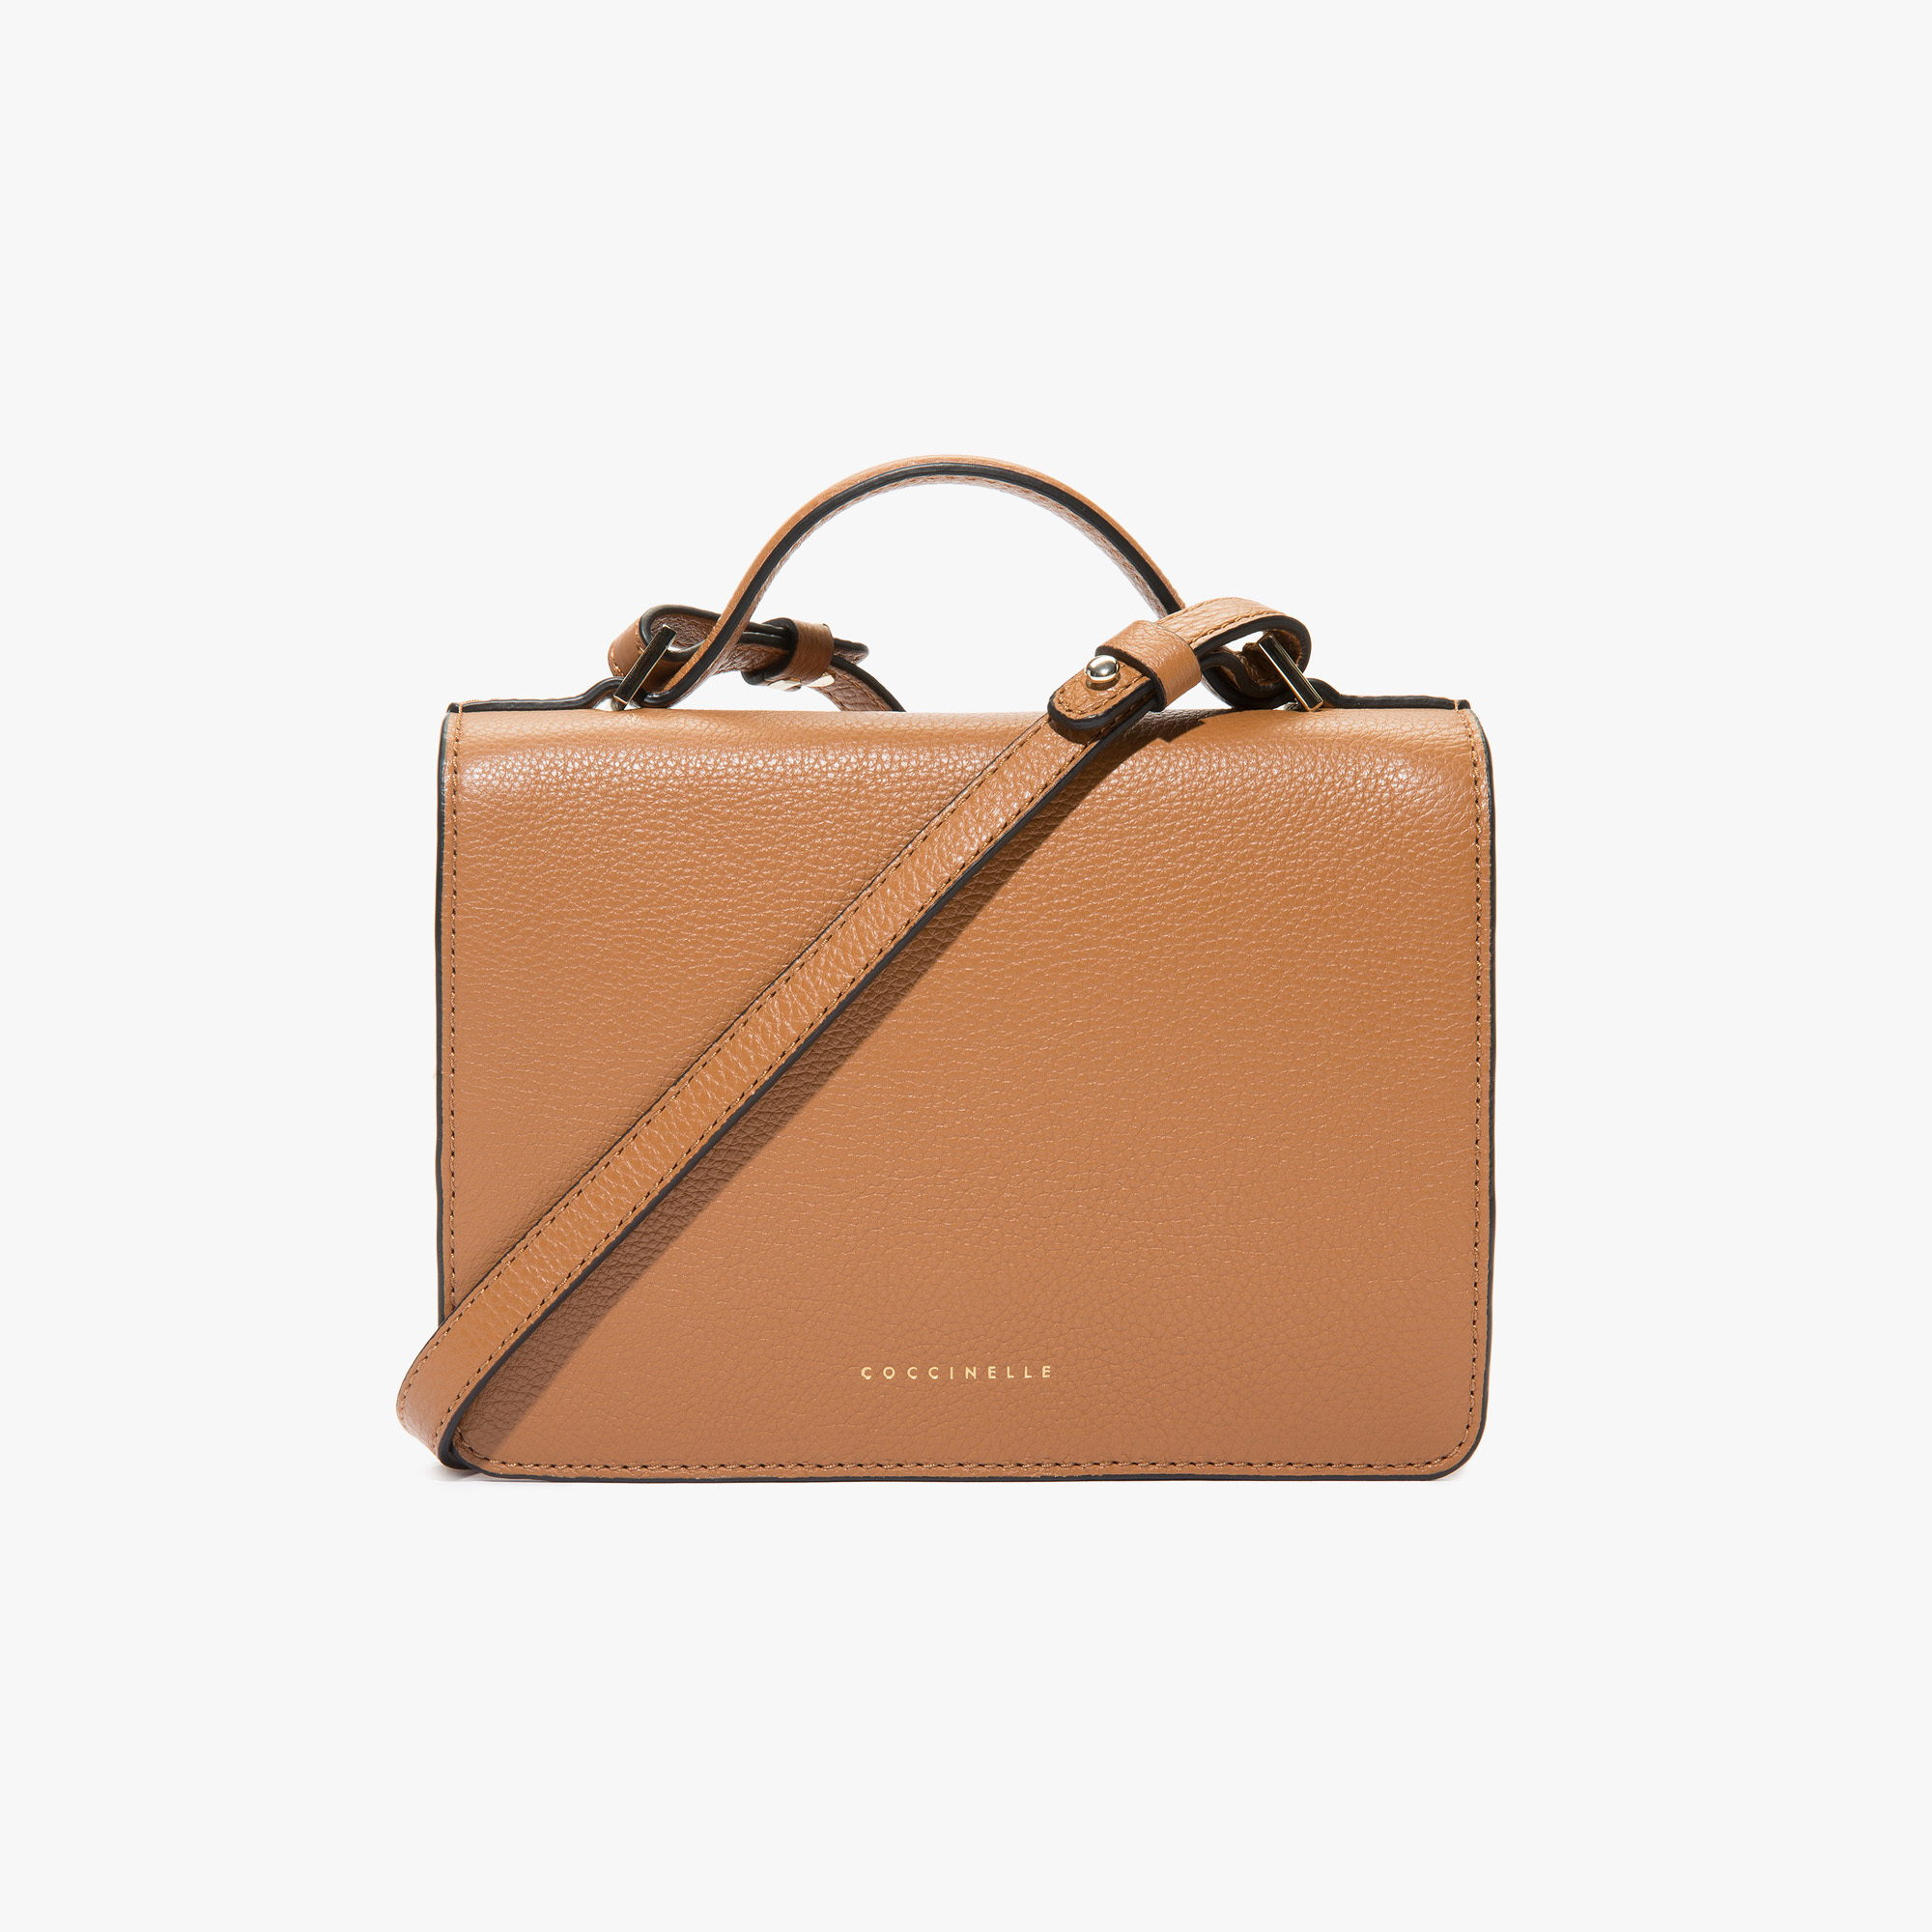 Coccinelle Leather clutch